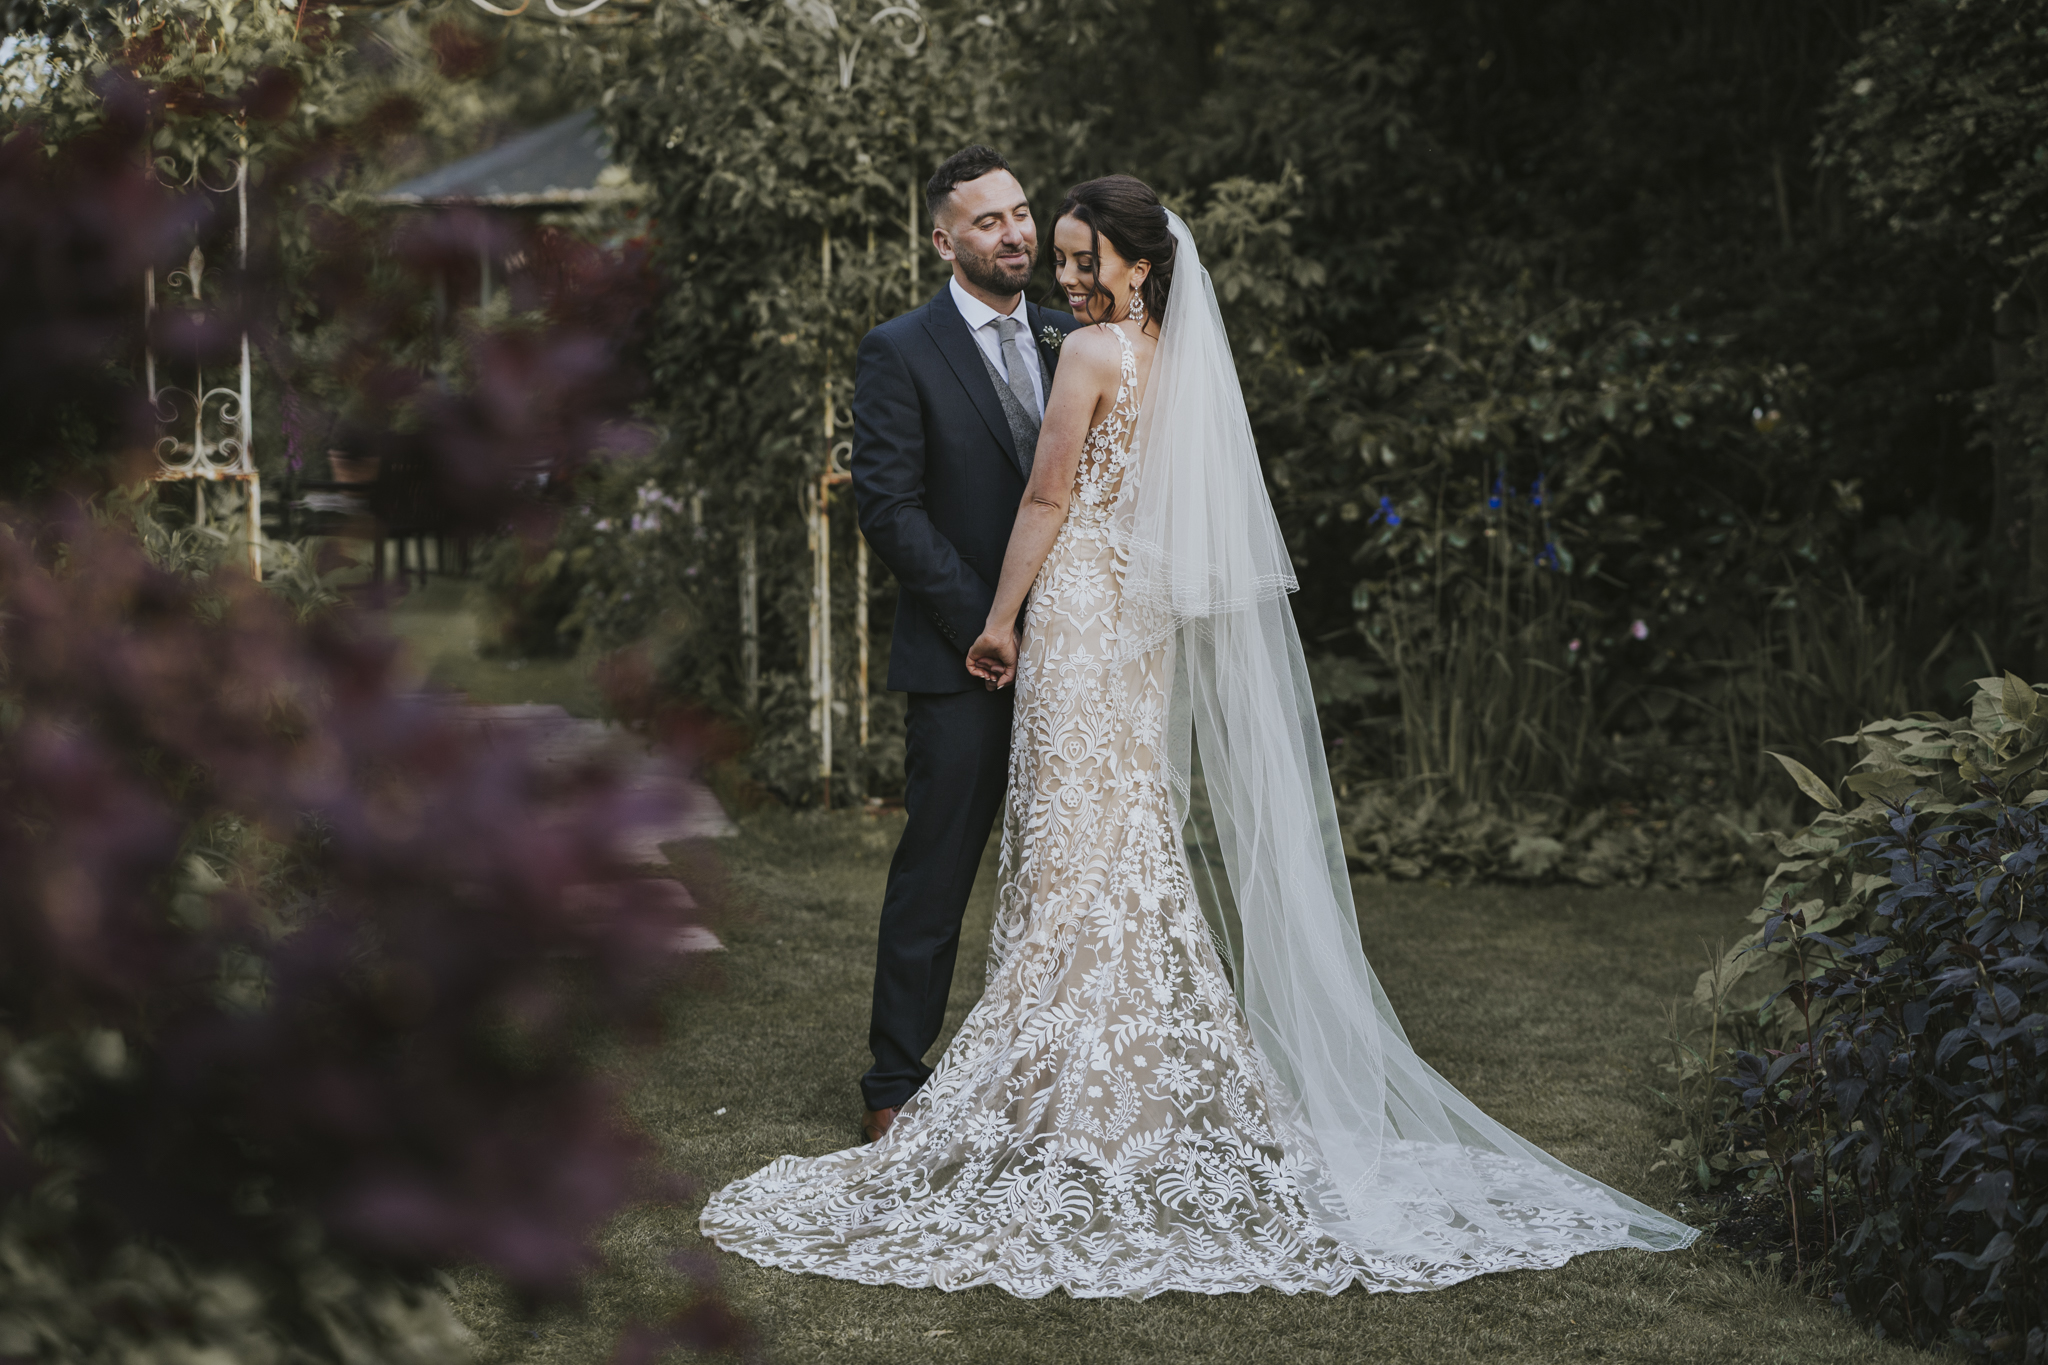 Marie + Marc - preview-14.jpg